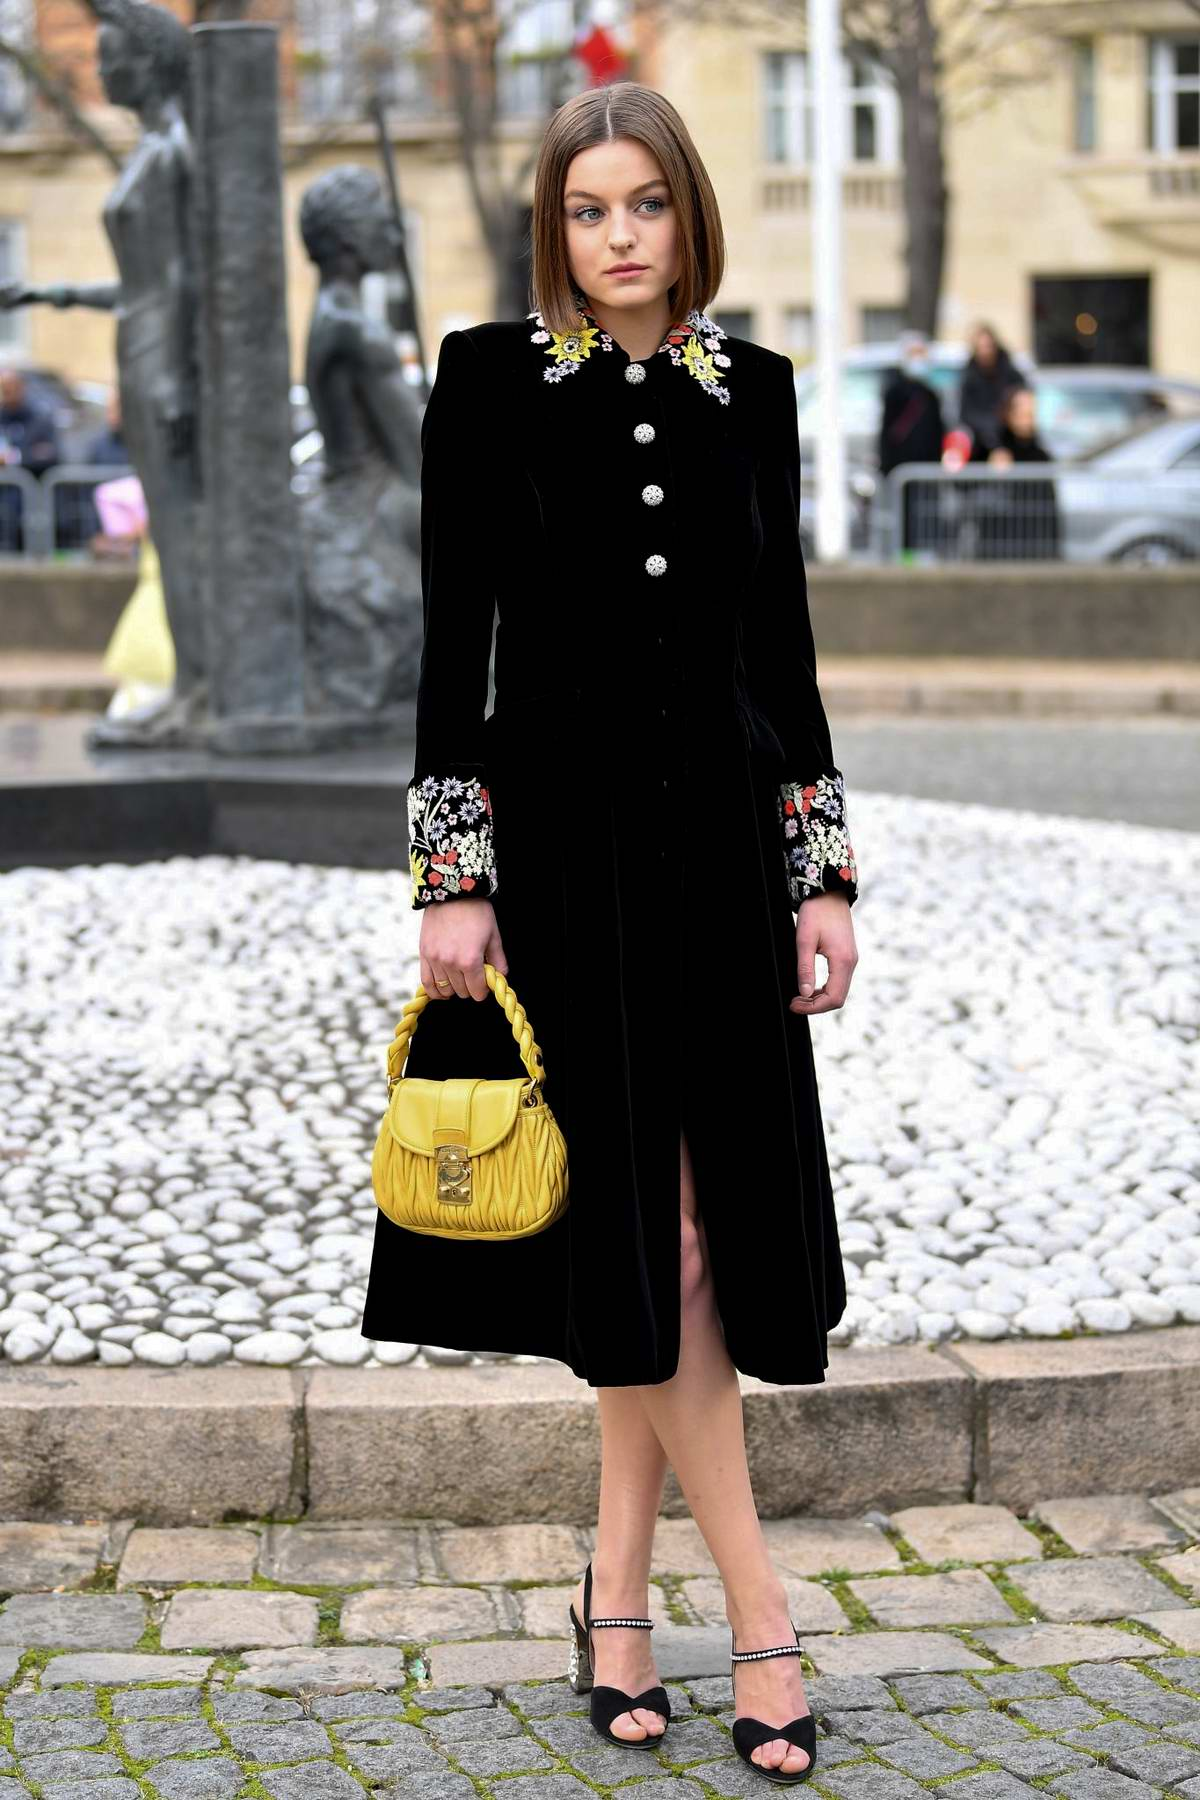 Emma Corrin attends the Miu Miu fashion show, F/W 2020 during Paris Fashion Week in Paris, France